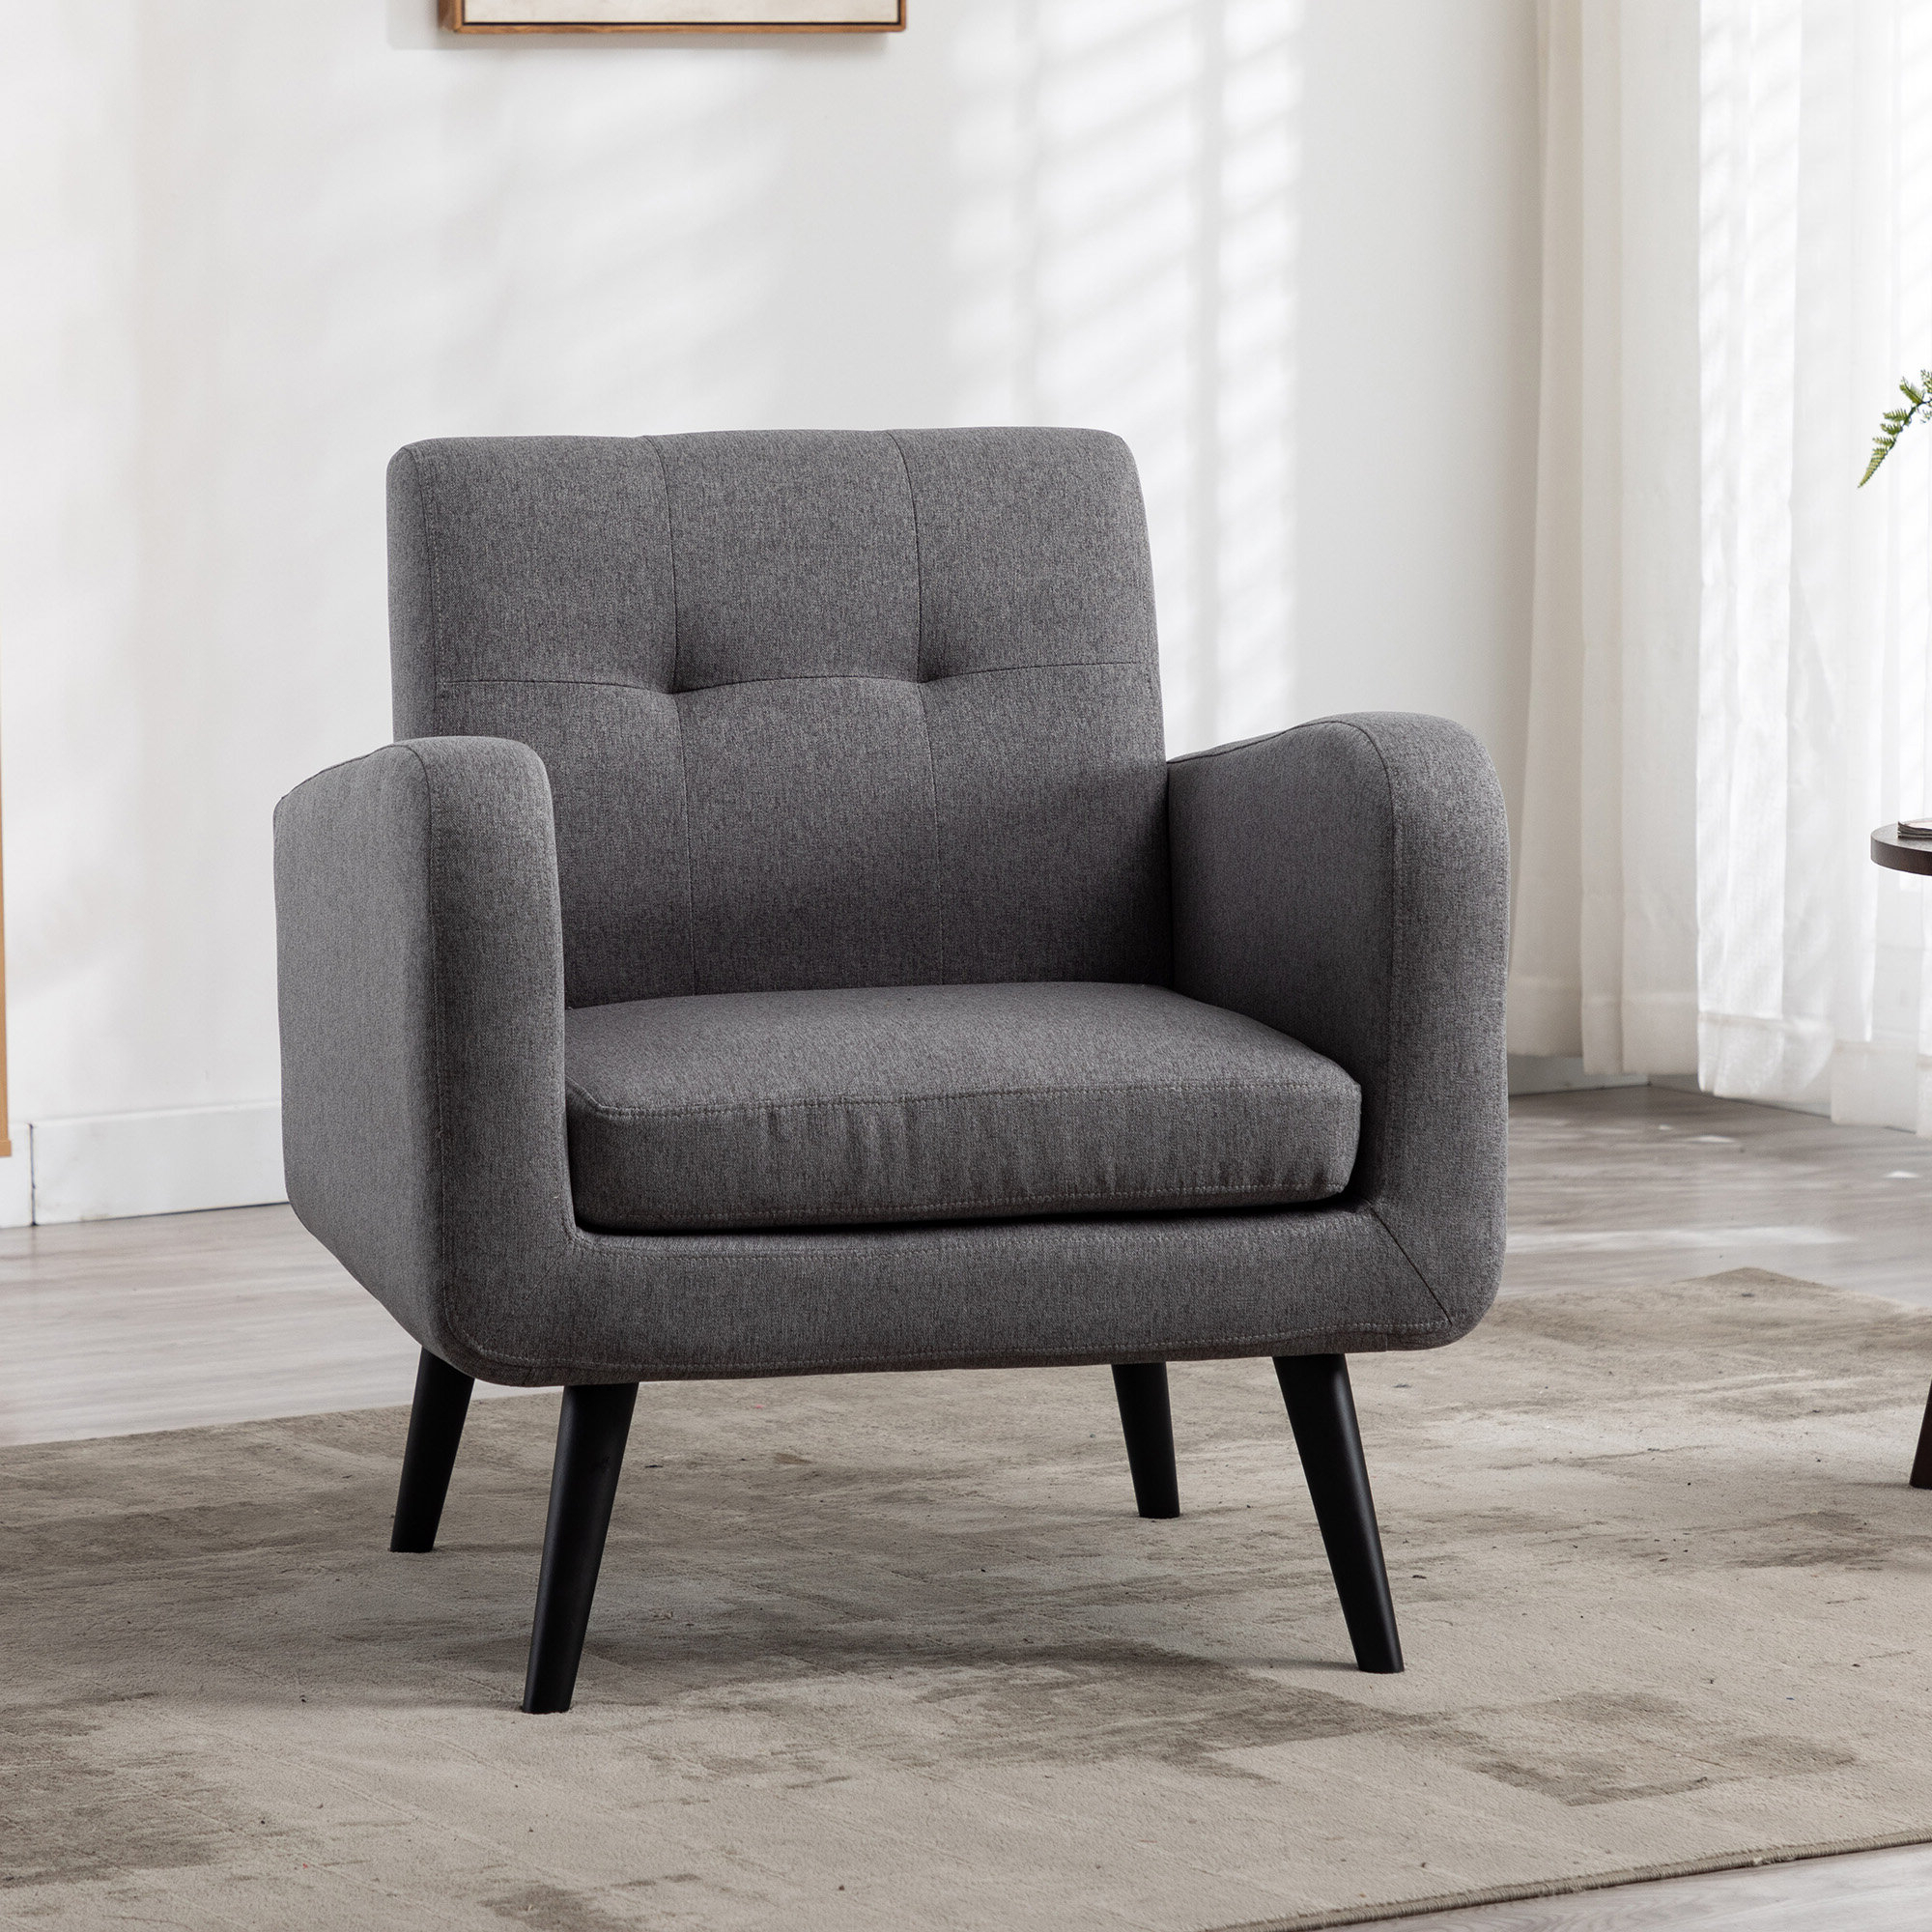 2019 Armory Fabric Armchairs With Regard To Armory Fabric Armchair (View 2 of 20)